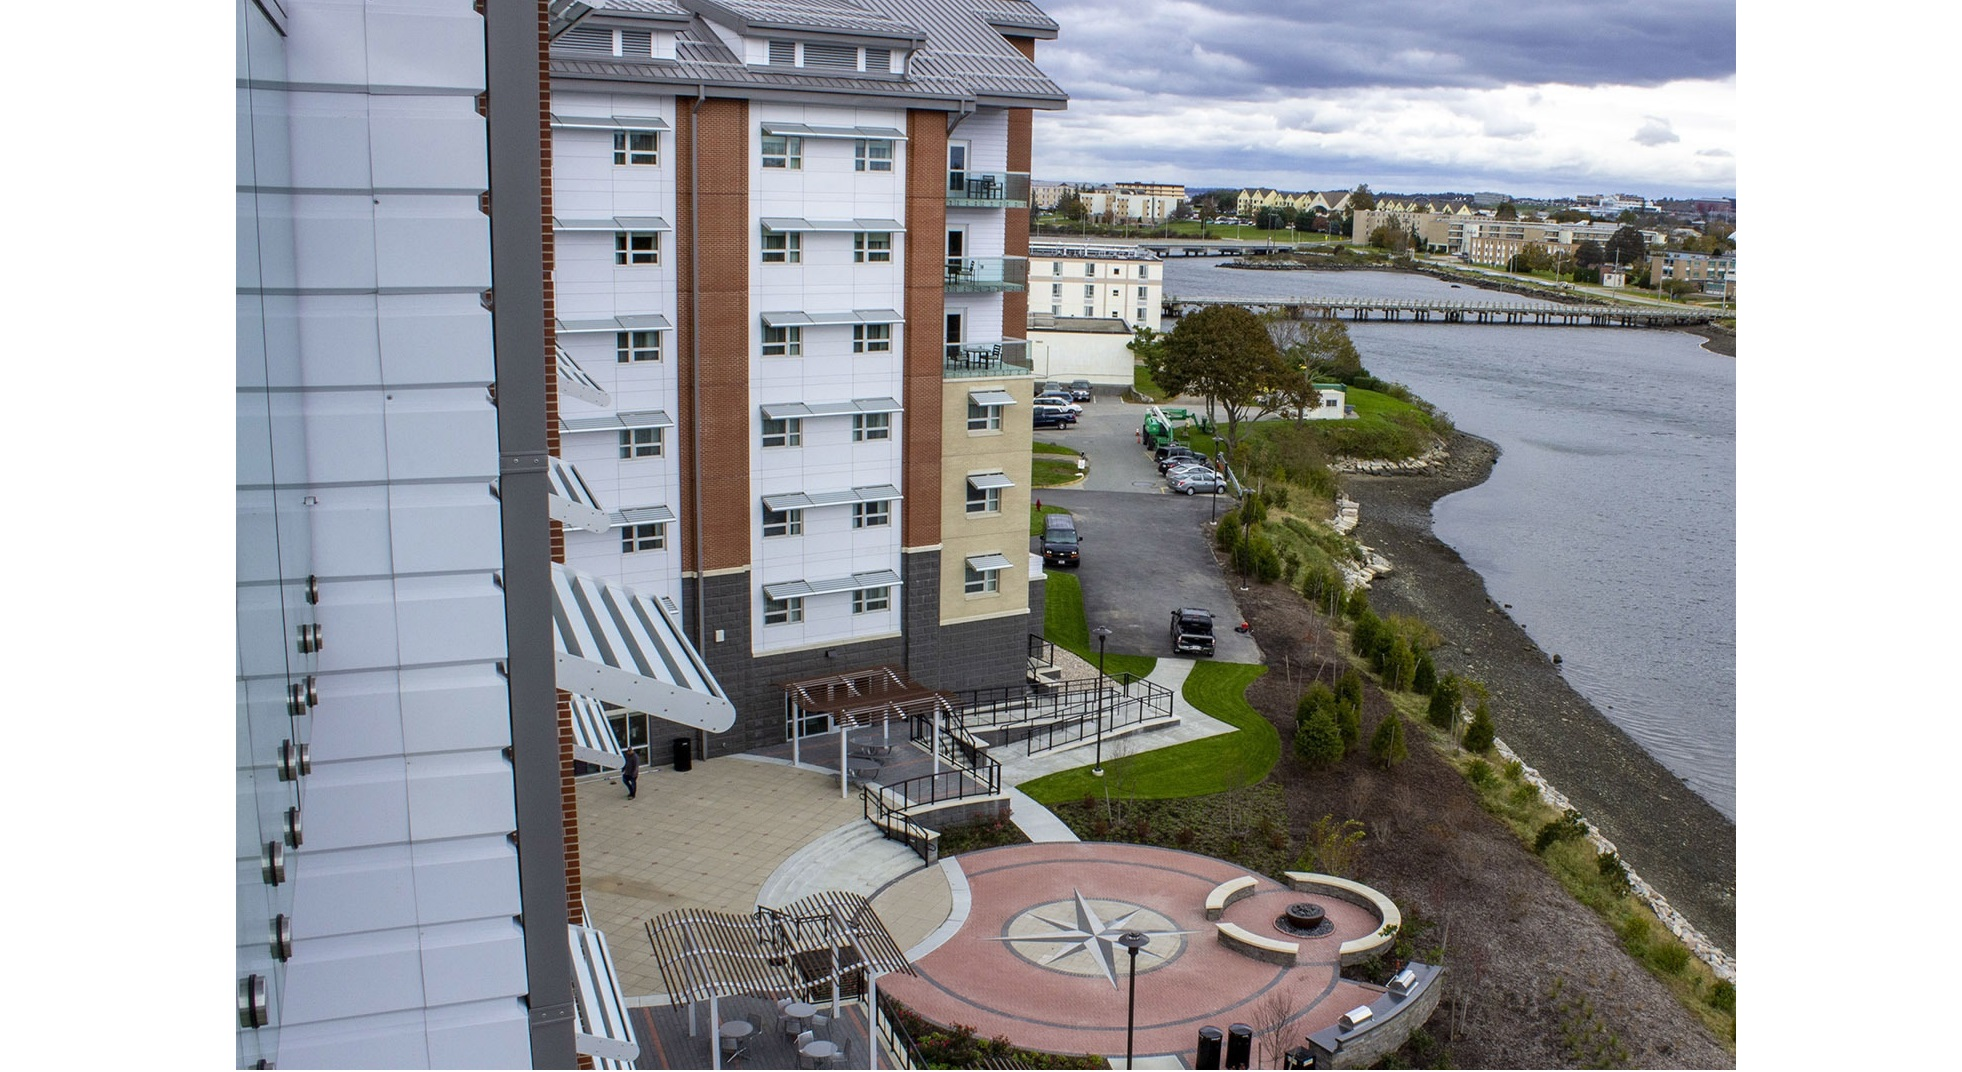 A view of the Navy Gateway Inns & Suites transient lodging facility on Naval Station Newport, R.I. The Navy is moving toward privatizing all of its lodging. (MC2 Rawad Madanat/Navy)